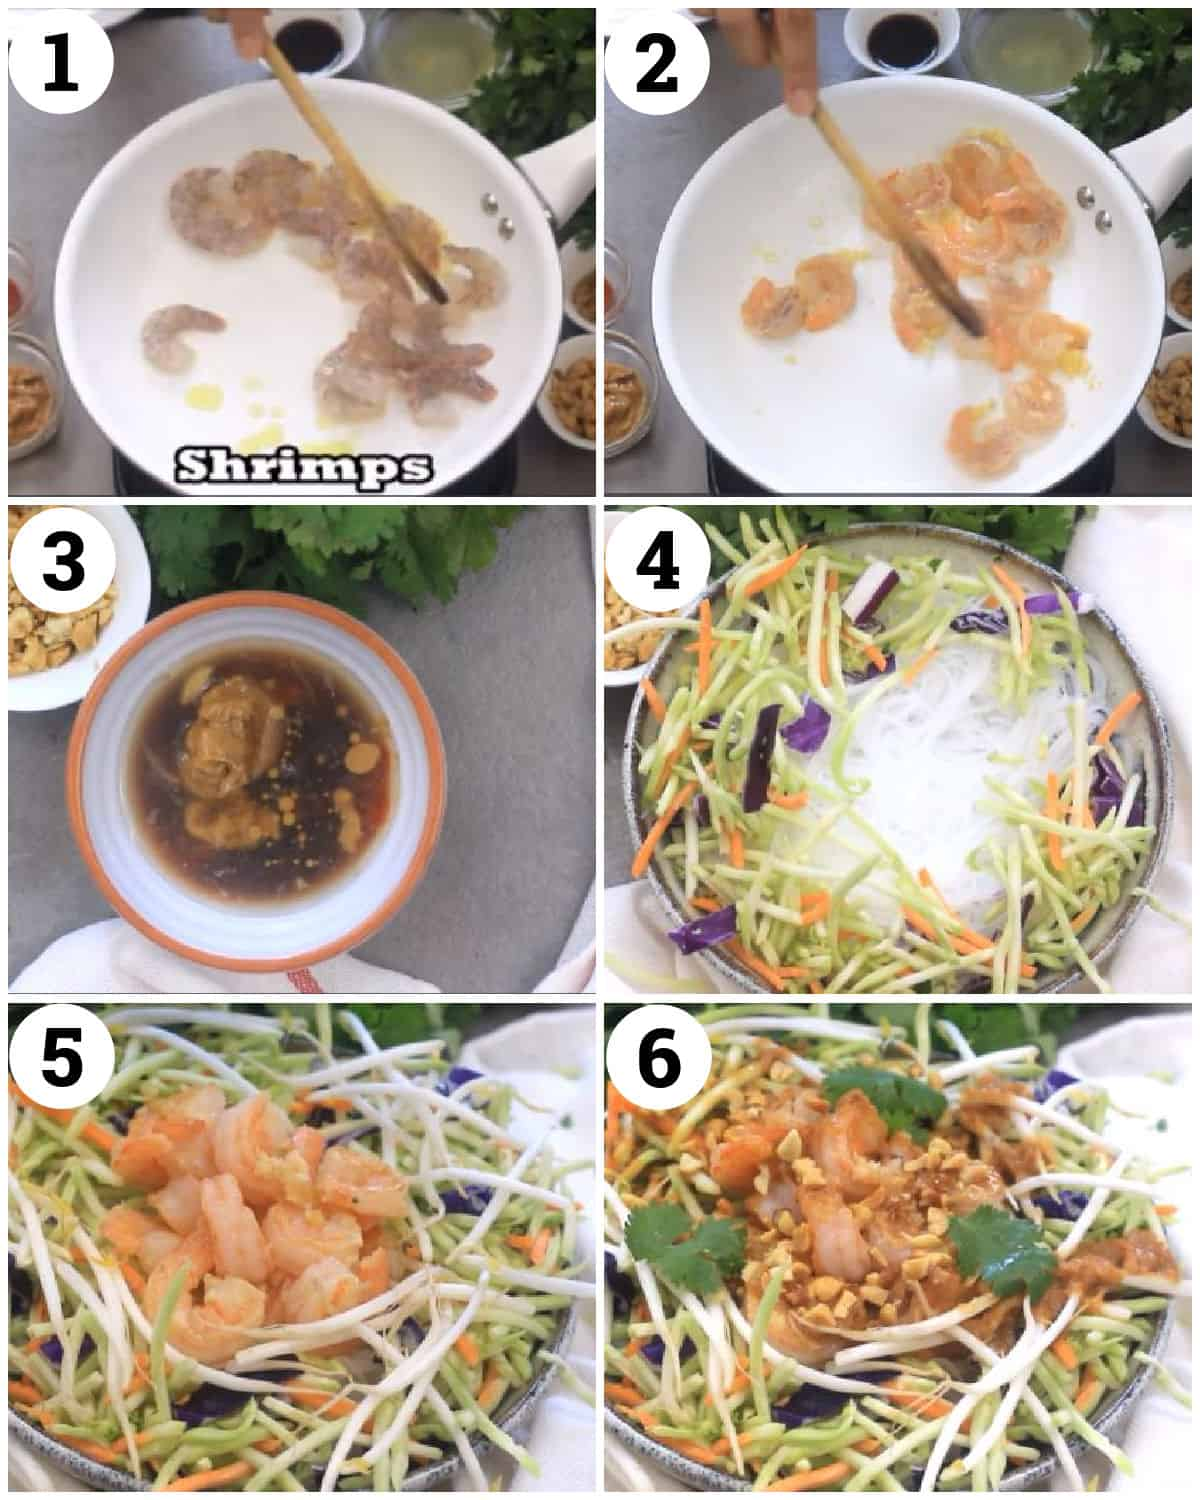 sear the shrimp, make the dressing and assemble the salad.